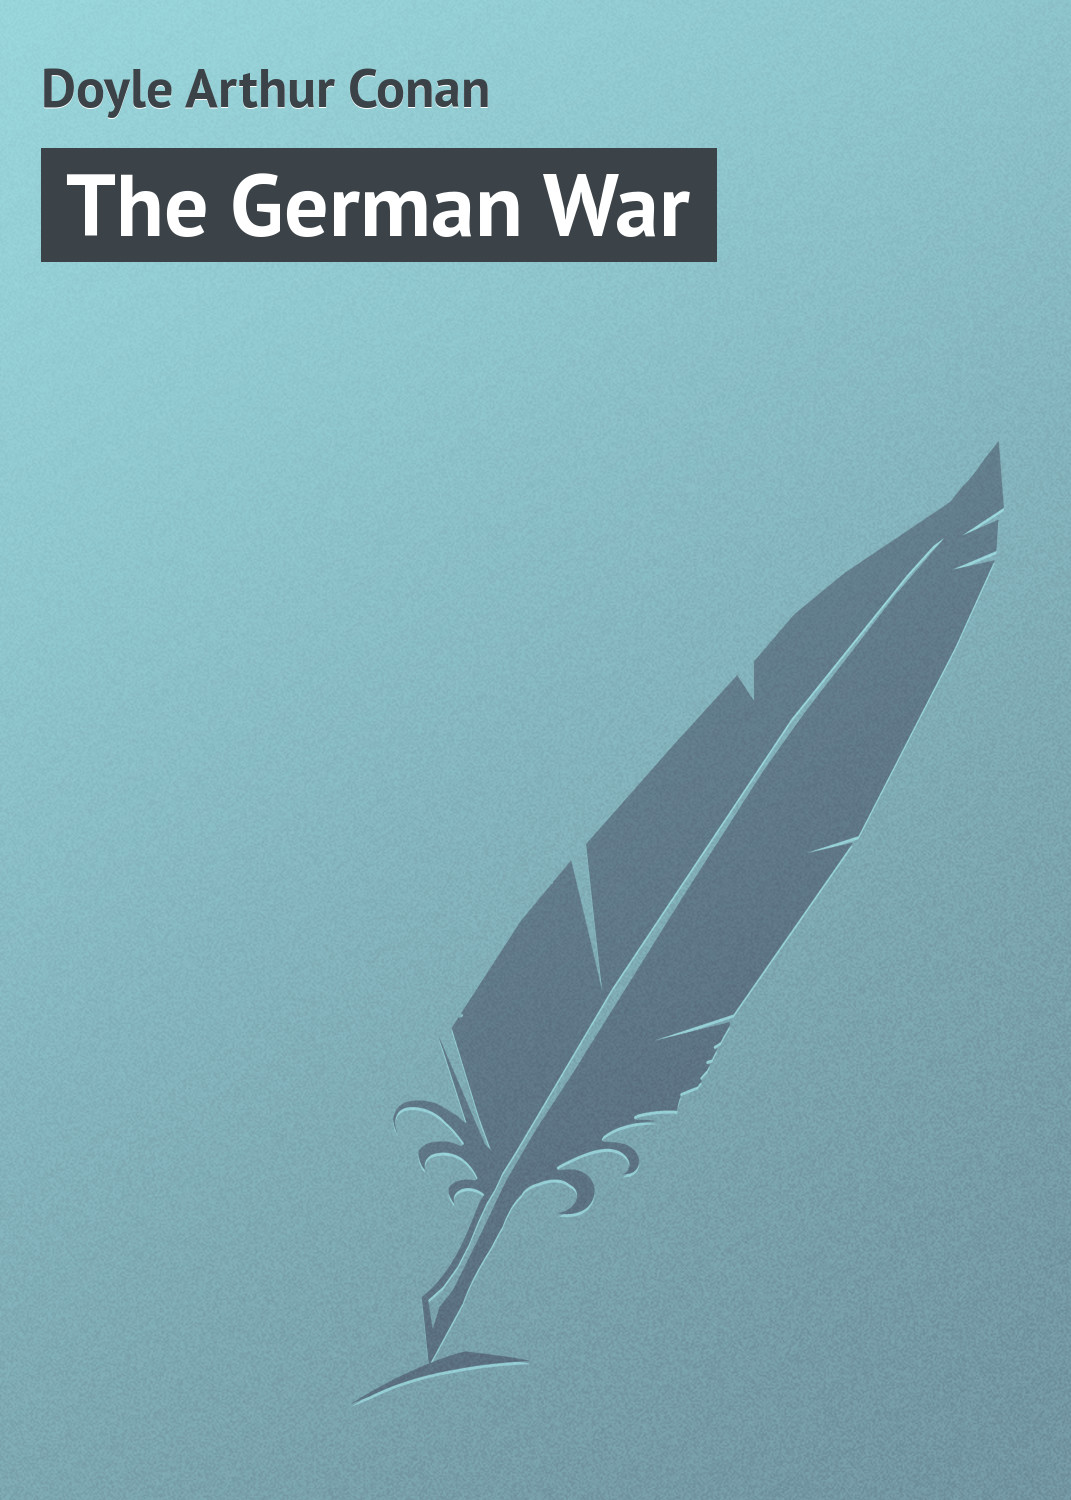 Doyle Arthur Conan The German War arthur conan doyle the white company isbn 978 5 521 07143 2